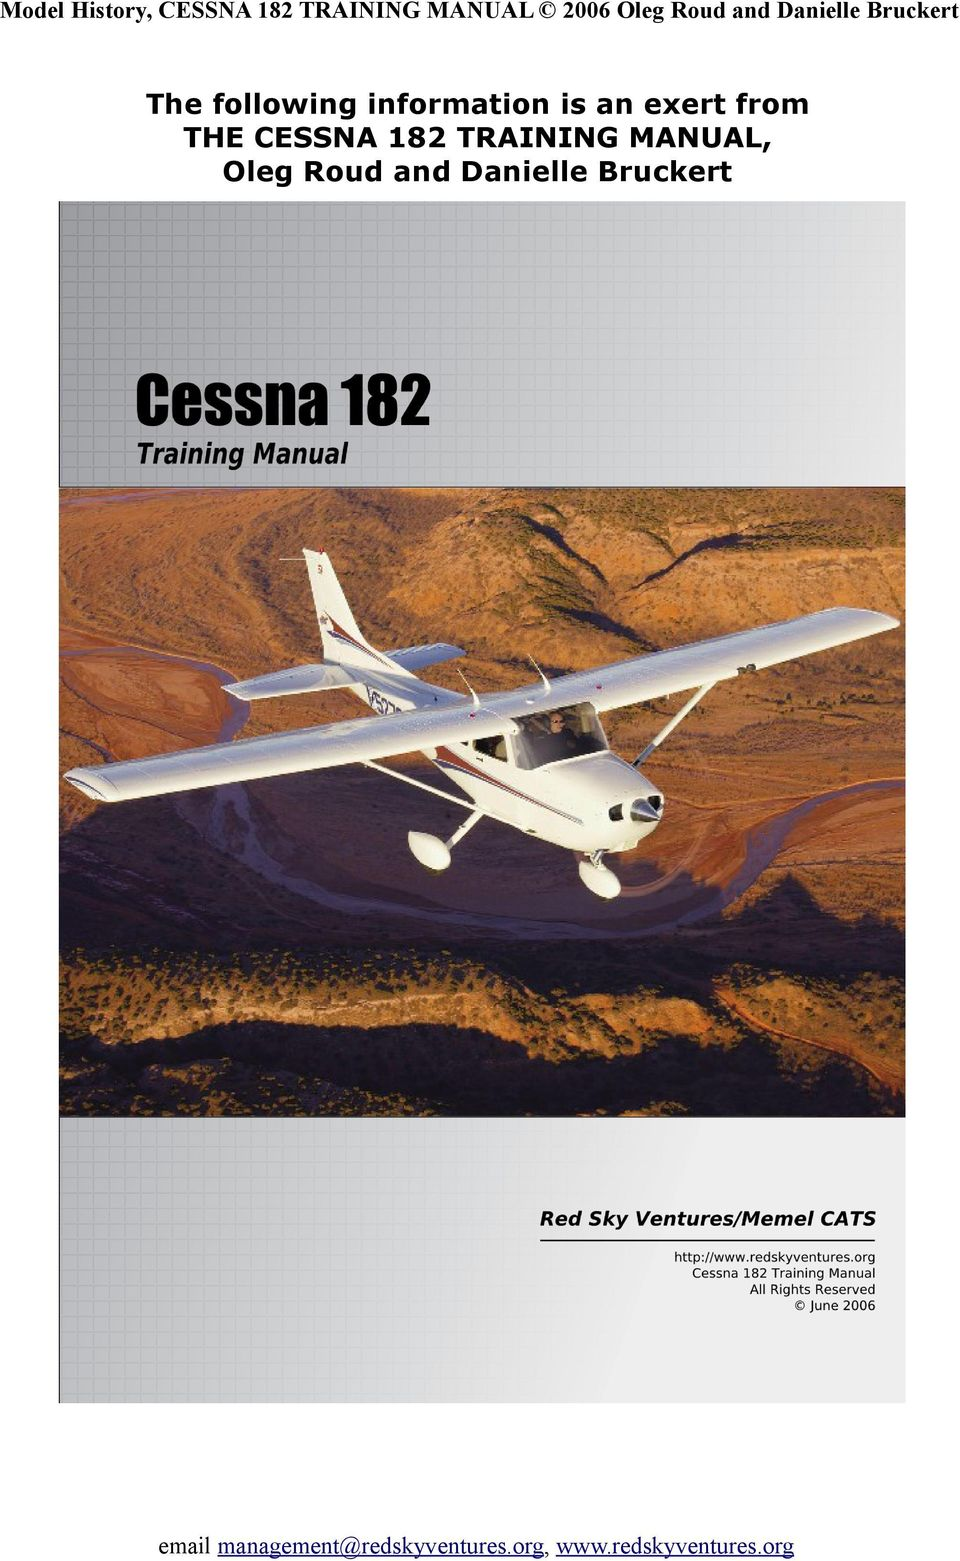 CESSNA 182 TRAINING